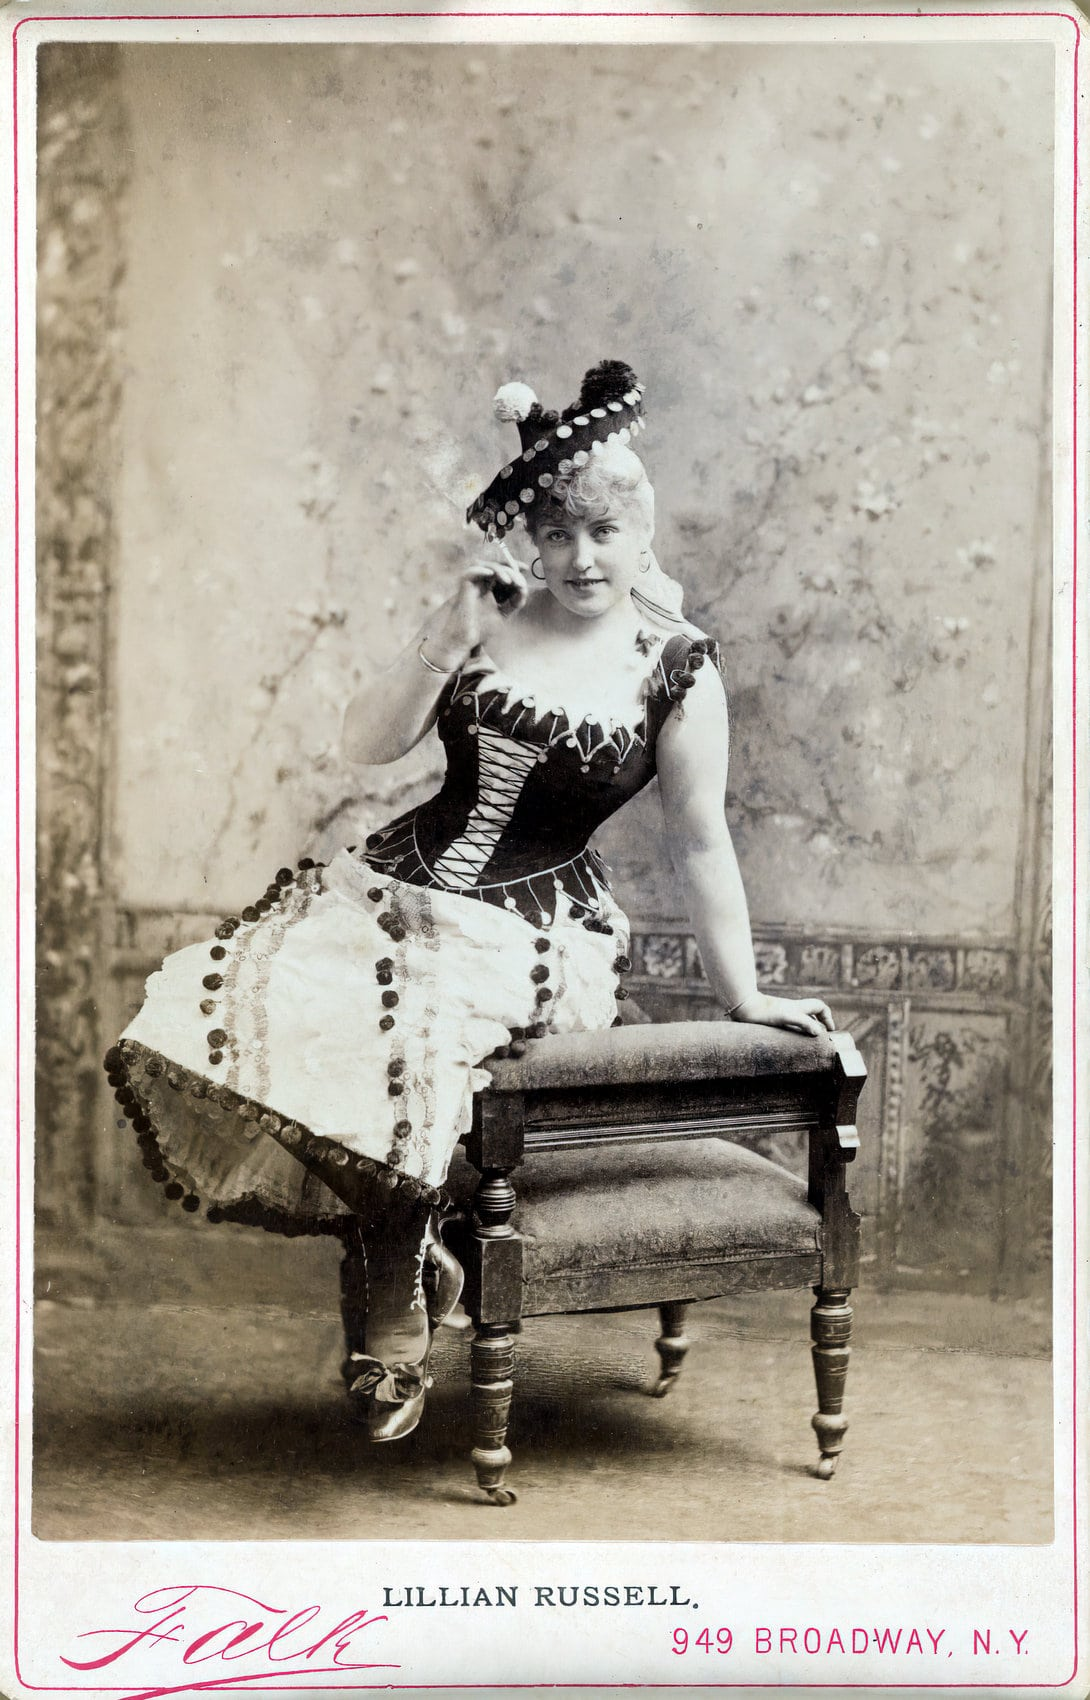 Vintage actress Lillian Russell in a black corset